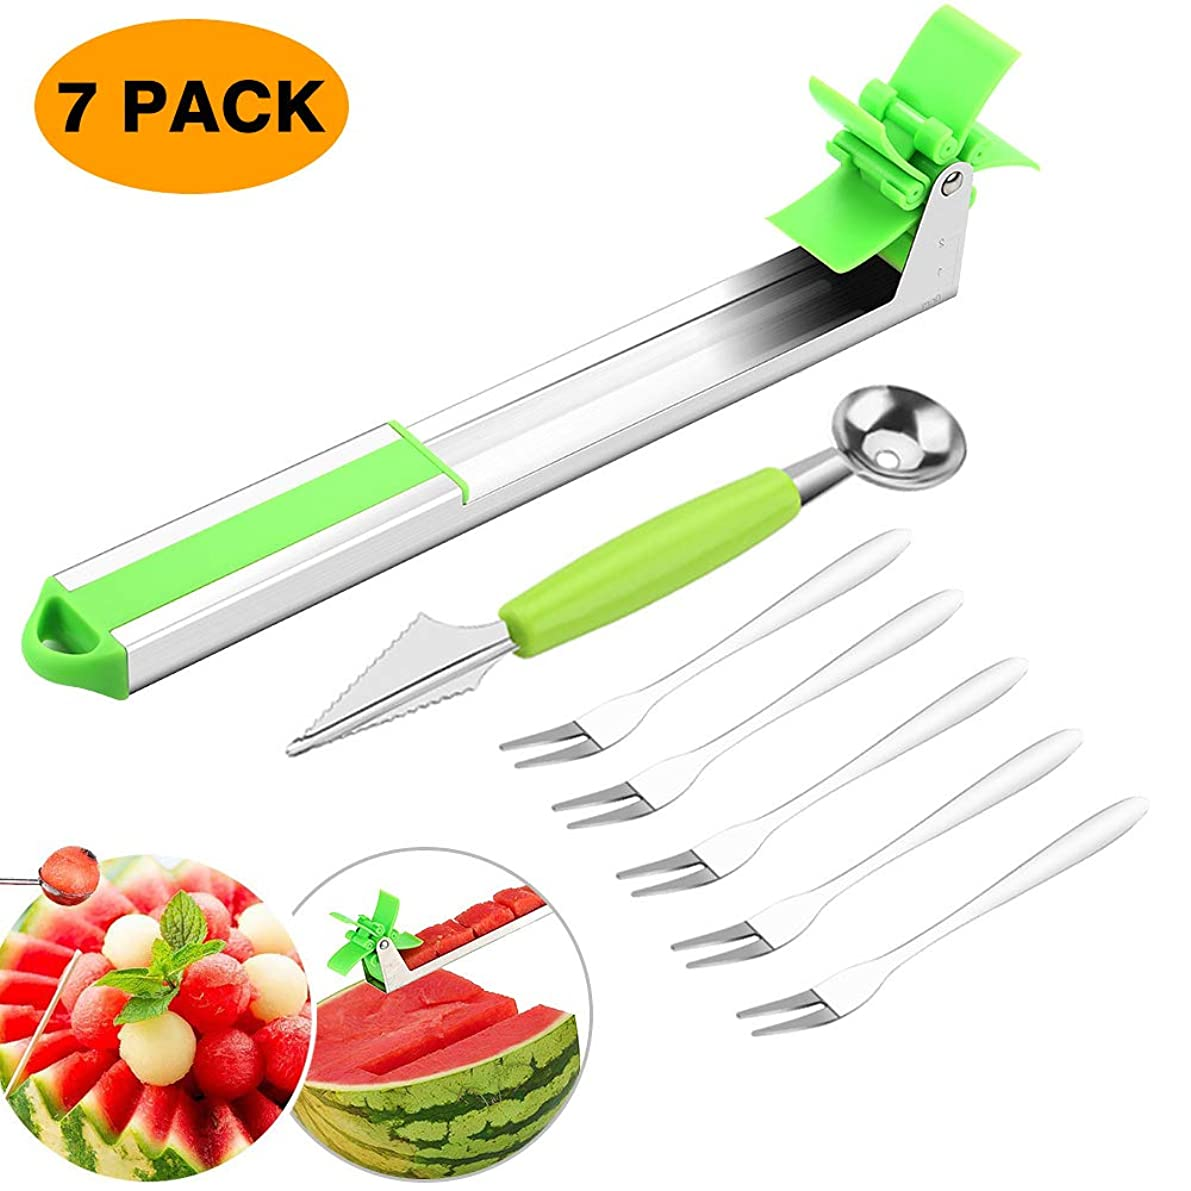 Aitsite Watermelon Slicer Cutter Stainless Steel Watermelon Windmill Cutter Fruit Melon Knife Slicer Corer Tools with Melon Baller Scoop and Fork Kitchen Gadgets